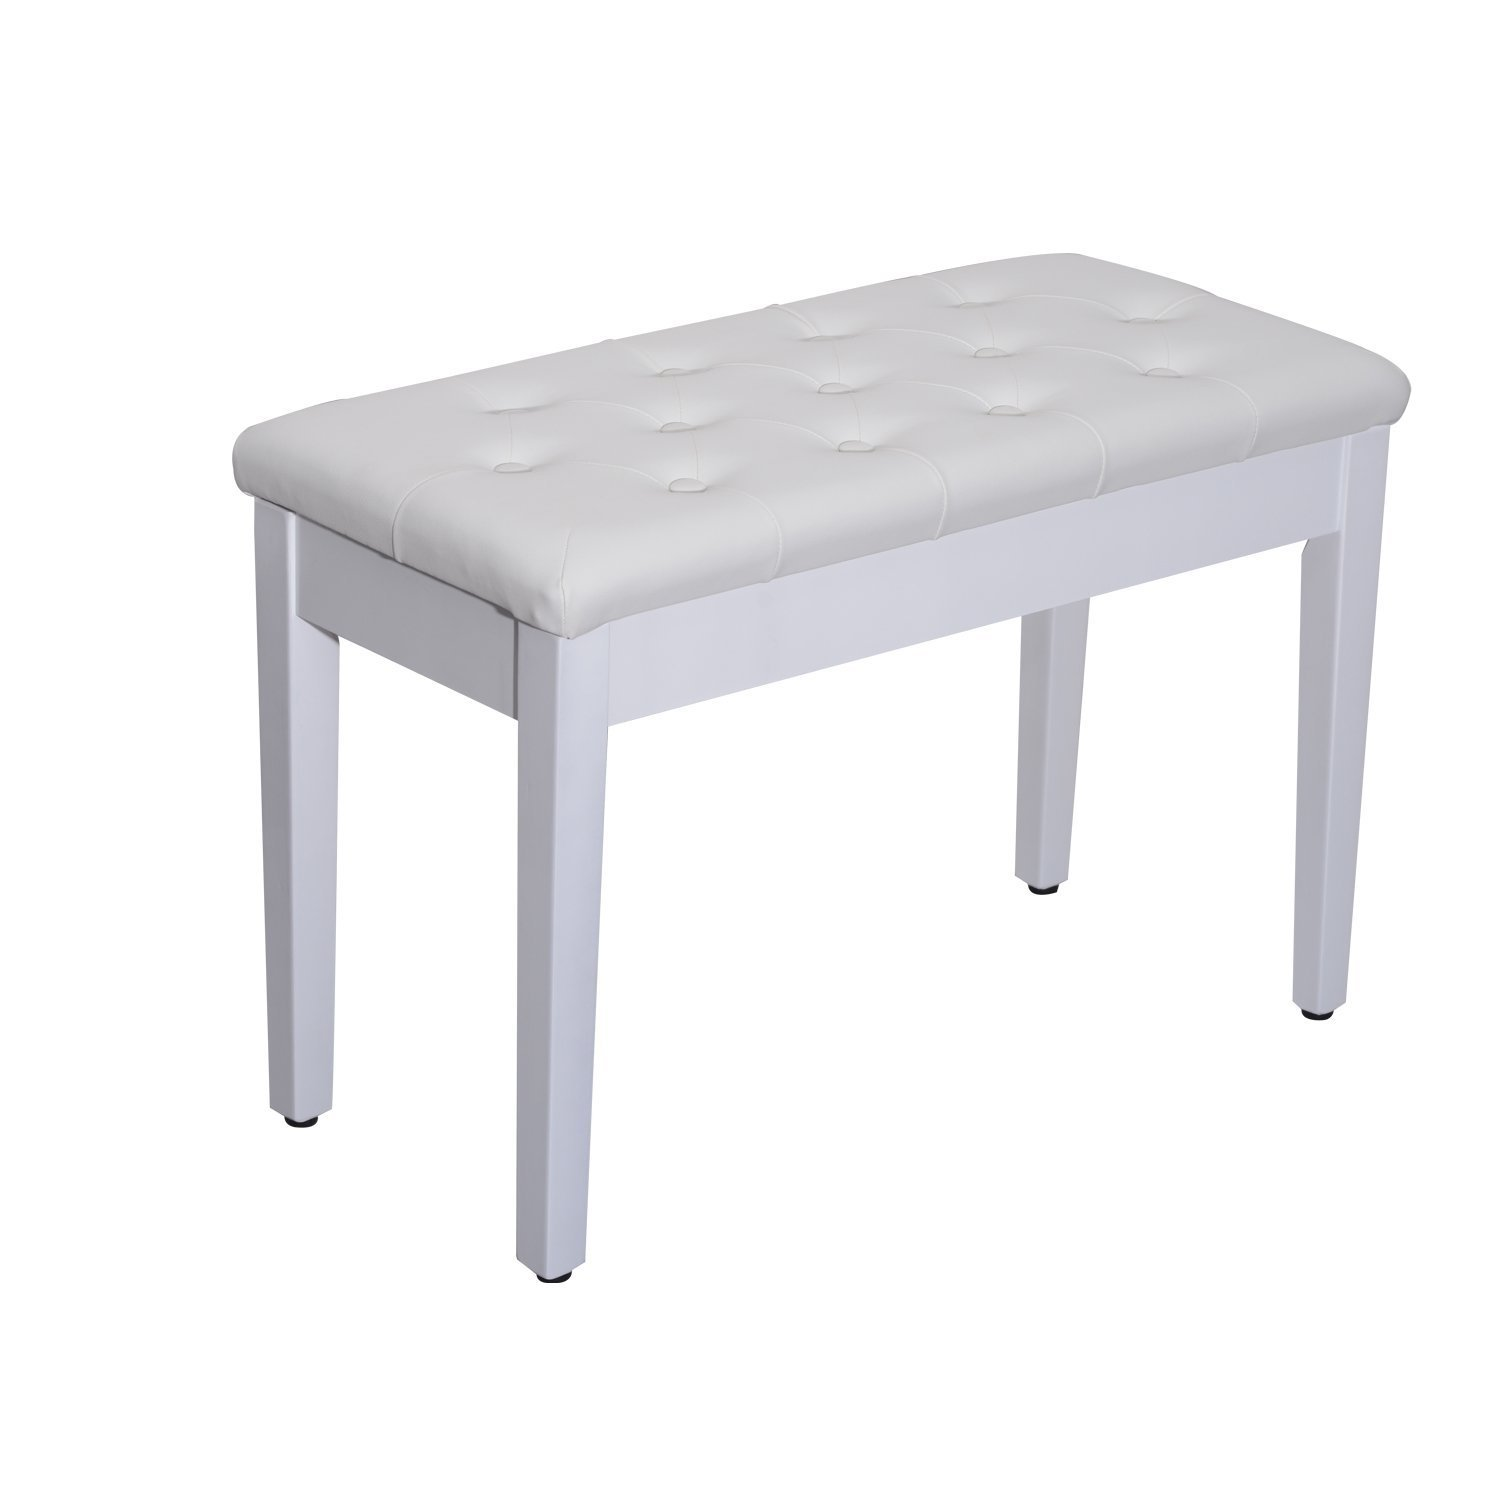 Amazon.com HomCom Faux Leather Padded Double / Duet Piano Bench w/ Music Storage - White Musical Instruments  sc 1 st  Amazon.com & Amazon.com: HomCom Faux Leather Padded Double / Duet Piano Bench w ... islam-shia.org